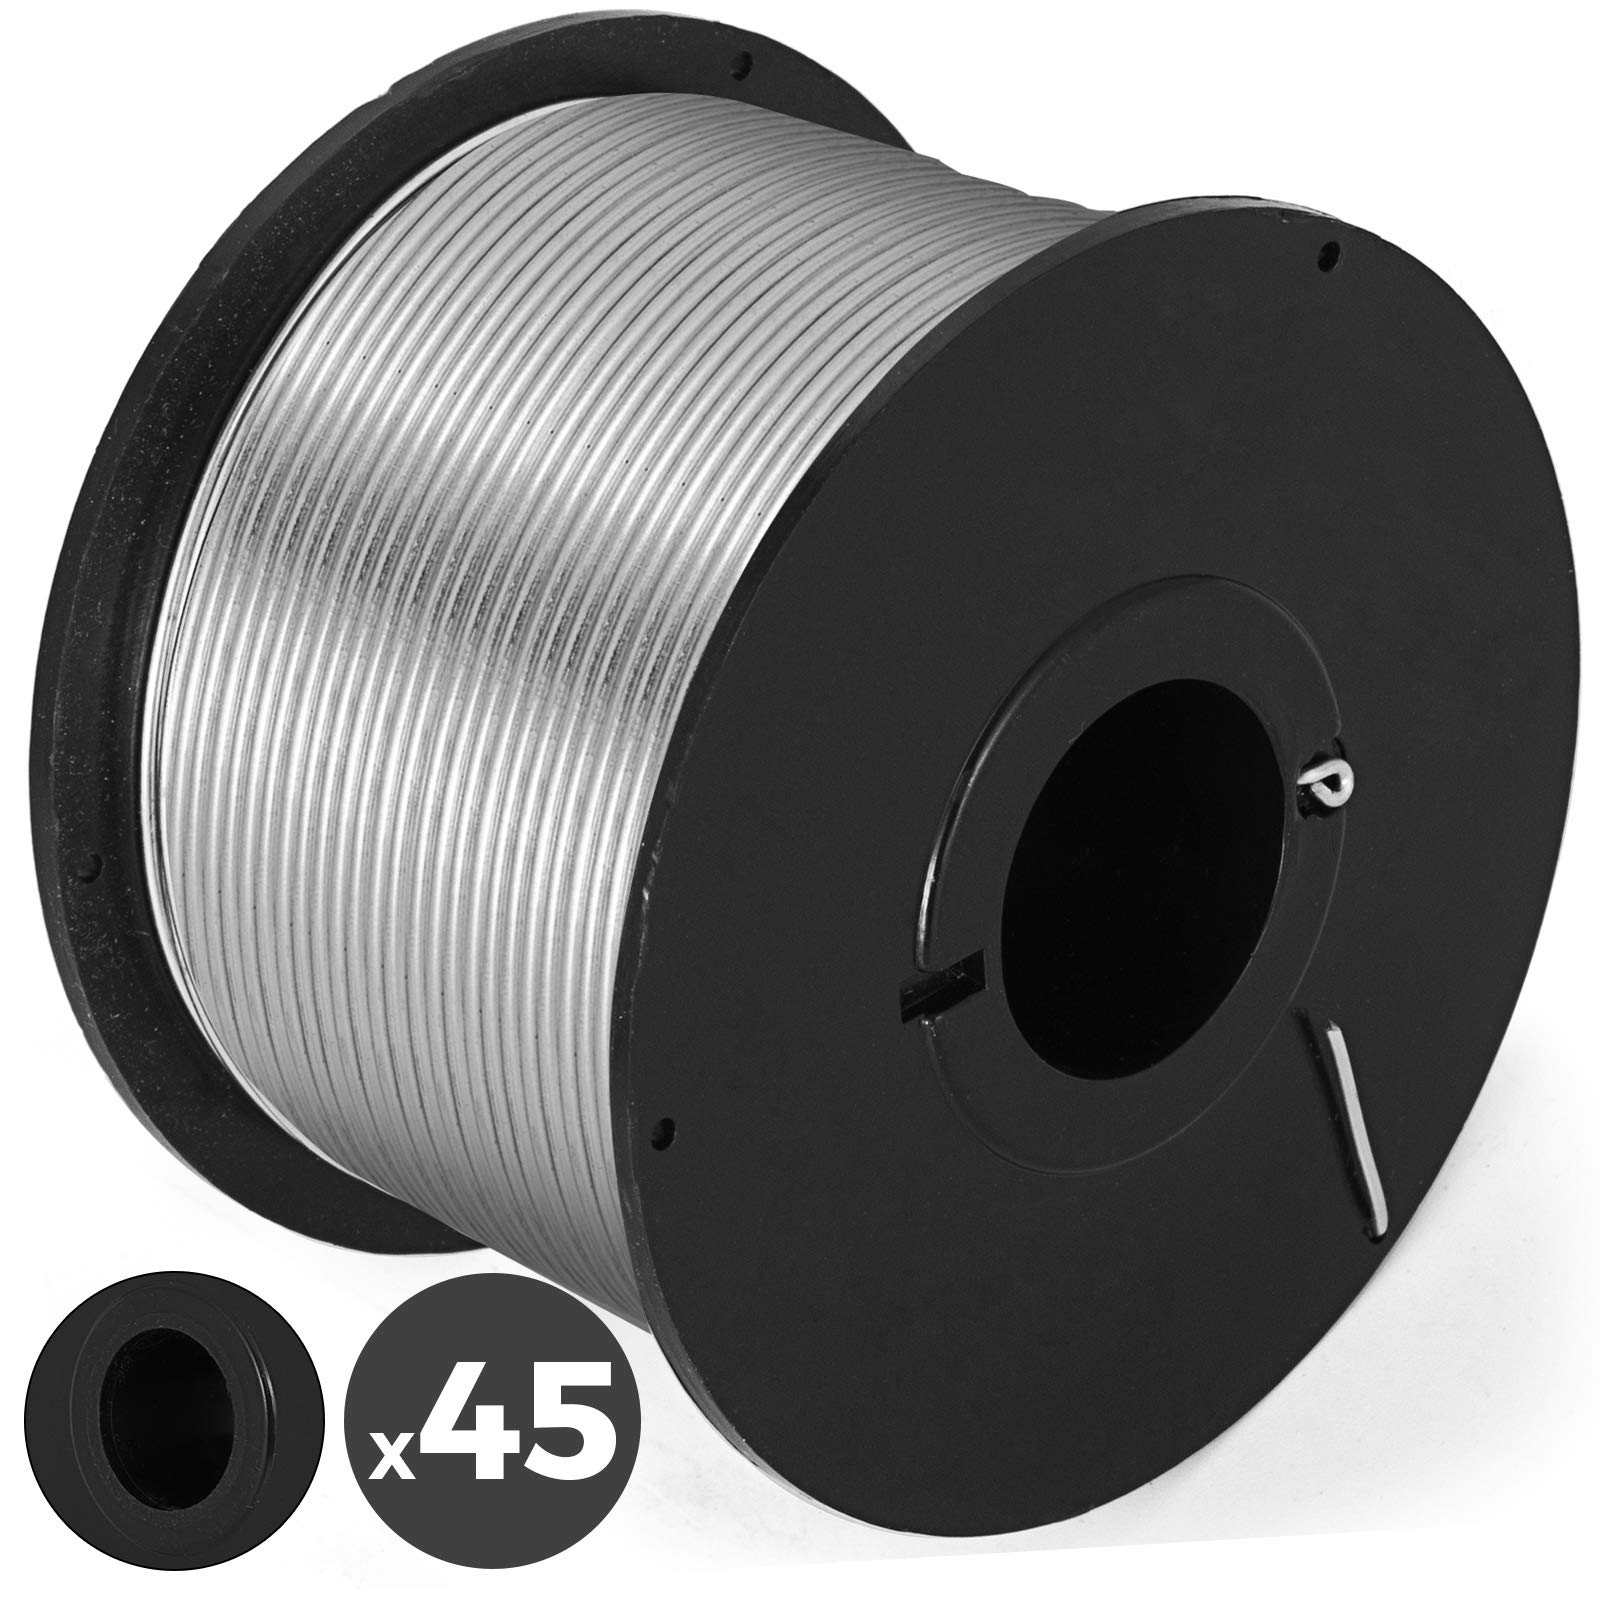 Mophorn 45 Rolls Rebar Tie Wire Coil For Automatic Rebar Tying Machine Automatic Steel Bar Rod Tying Tools by Mophorn